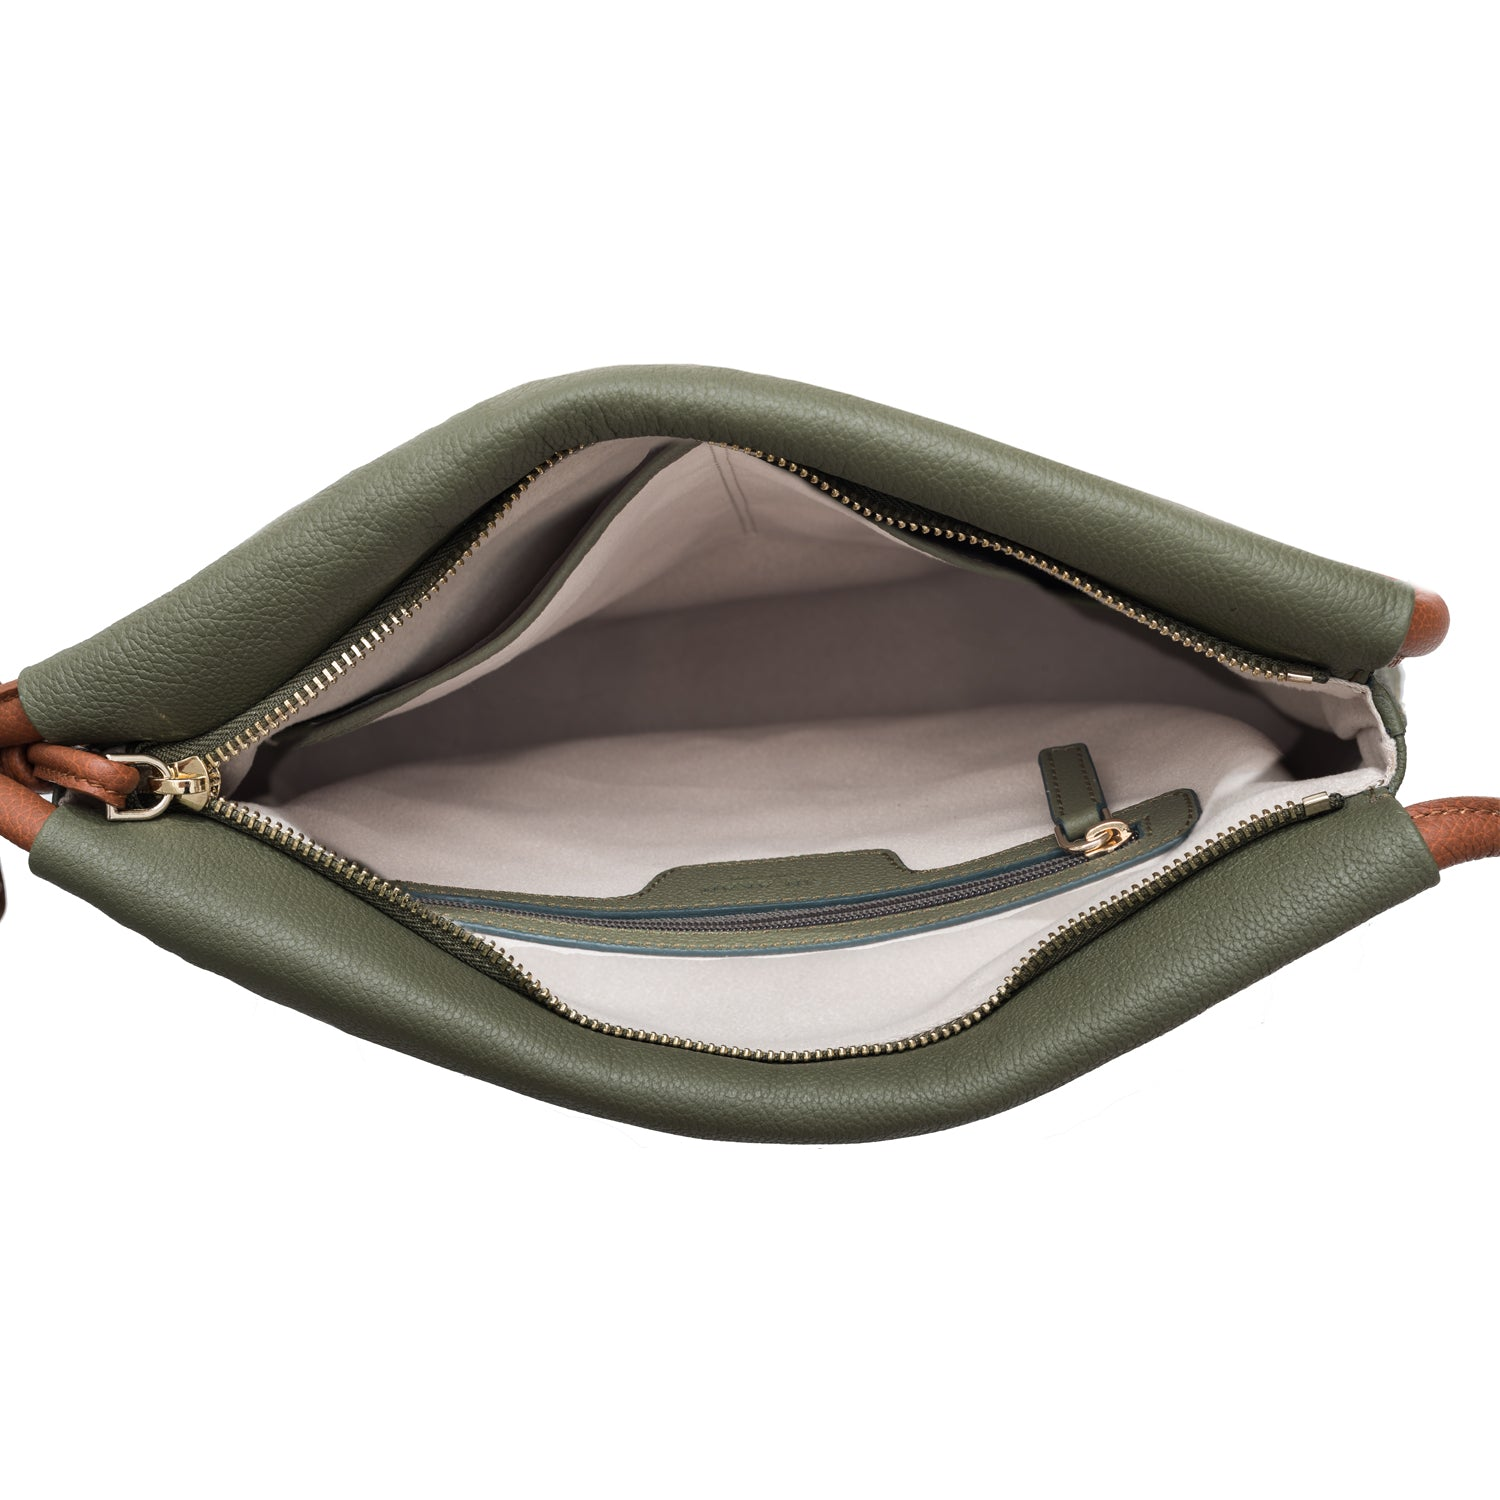 A convertible leather green shoulder bag for women with a knot detail on the strap that could be used as a clutch bag with its roll down feature, interior image.